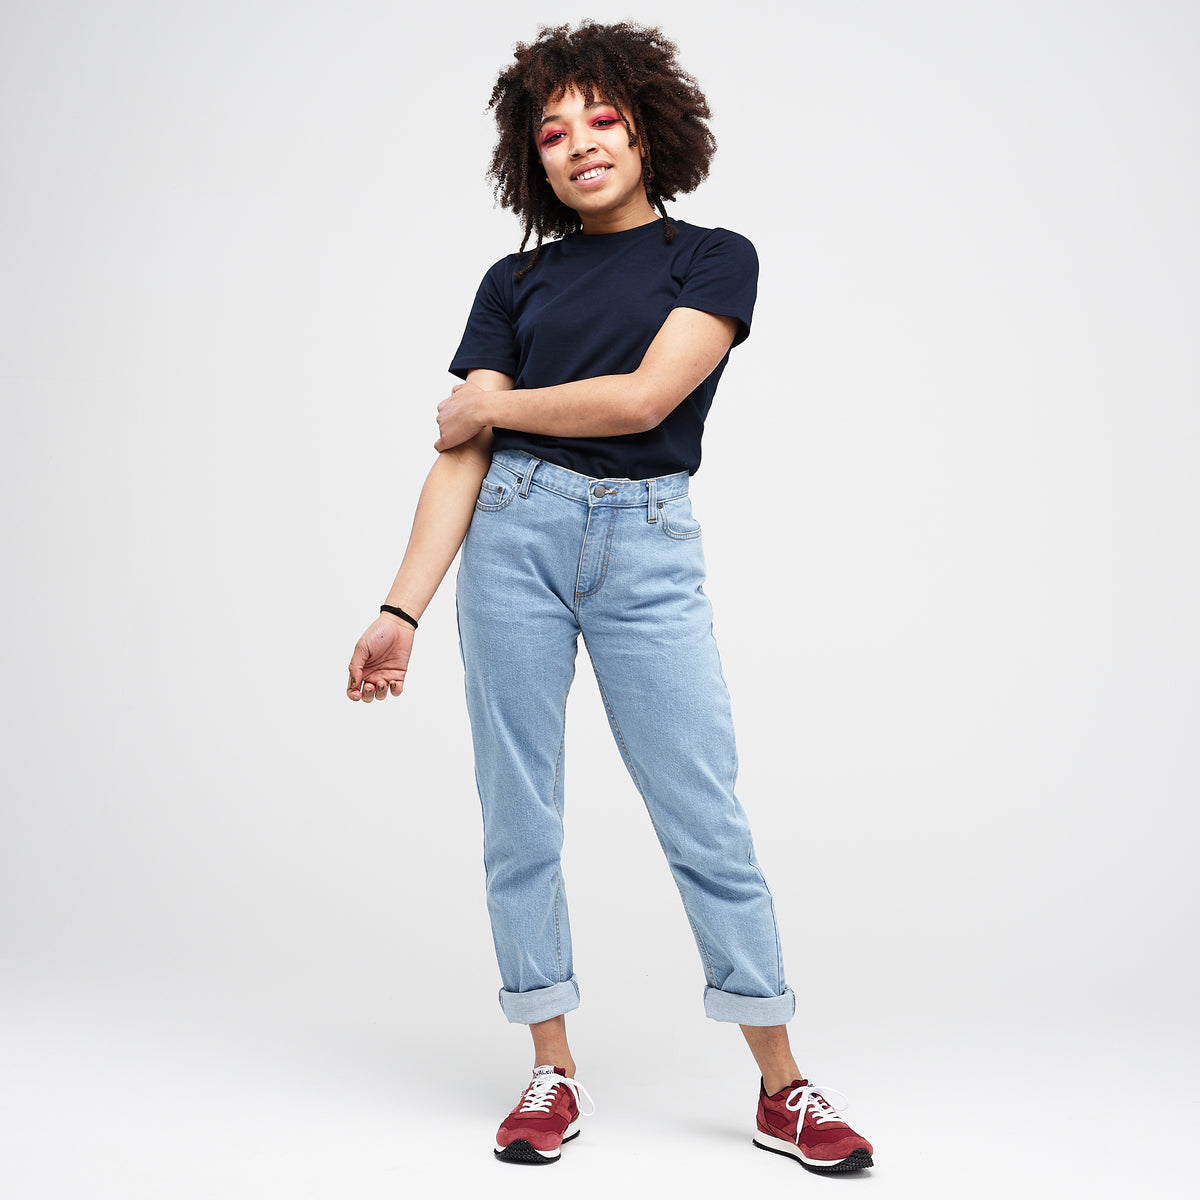 Women's Straight Leg Jeans Fade - Community Clothing